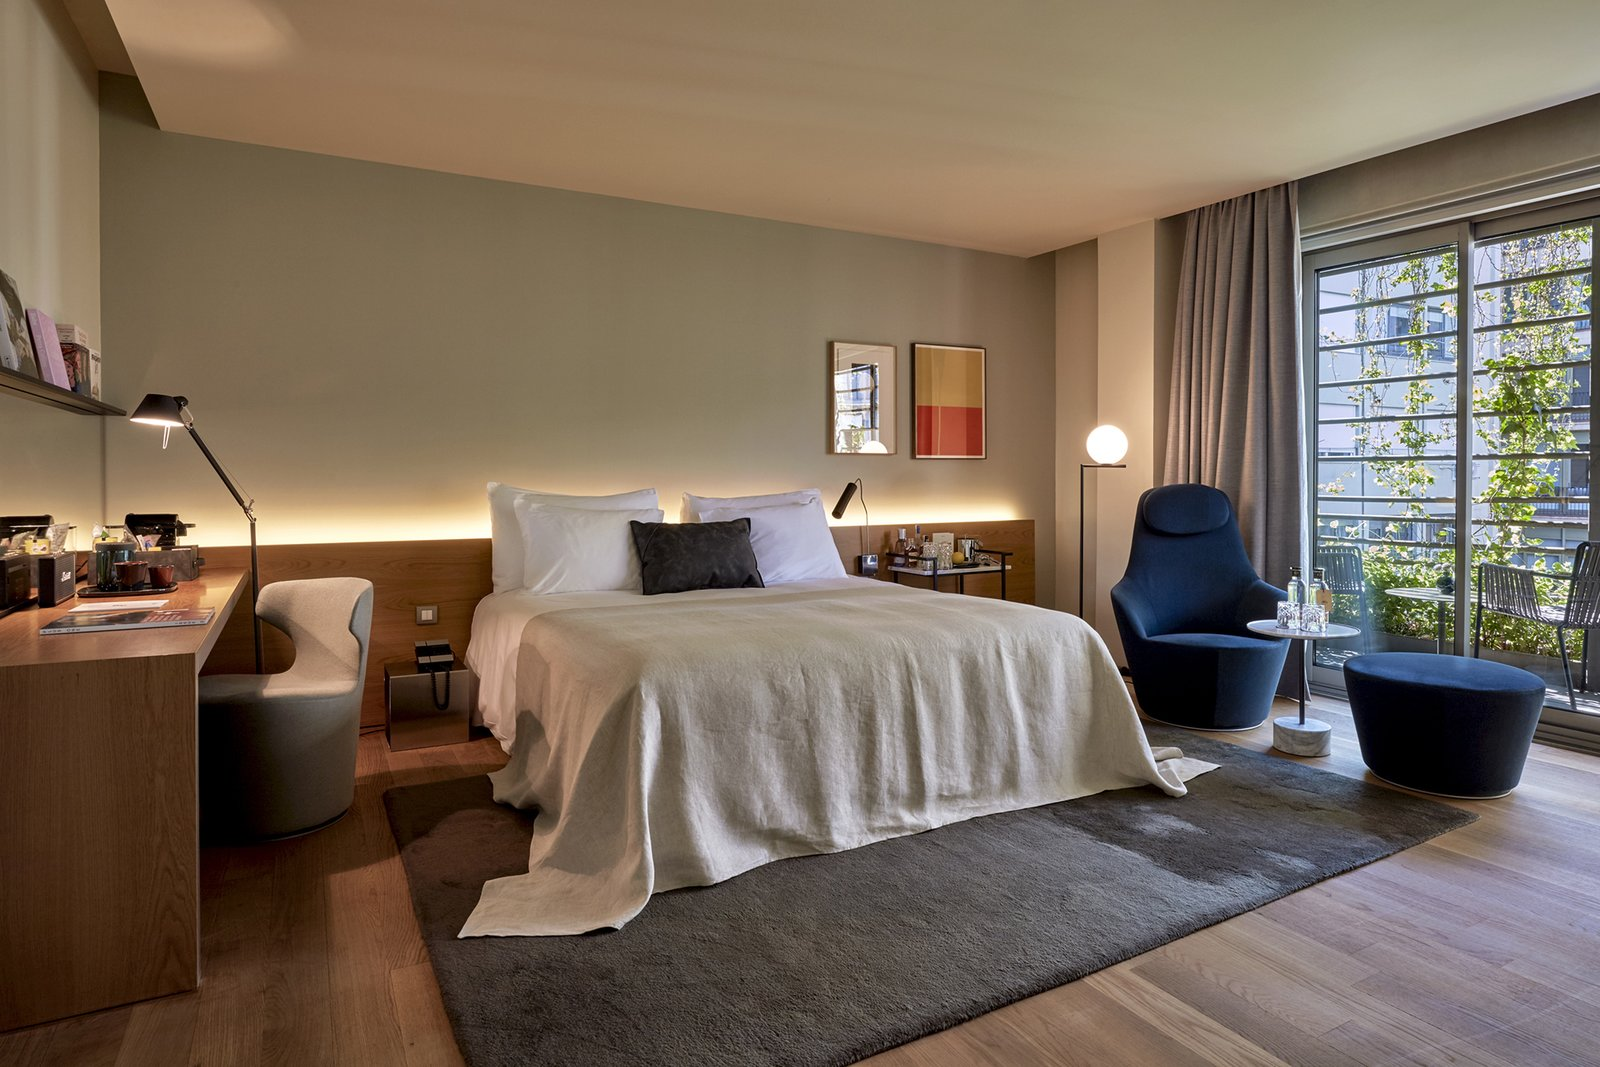 Bedroom, Bed, Night Stands, Table, Floor, Shelves, and Medium Hardwood The accommodations vary in size and layout—this room faces an interior courtyard.  Bedroom Medium Hardwood Floor Photos from Barcelona's Hottest New Hotel Draws Inspiration From a Rebellious Female Author